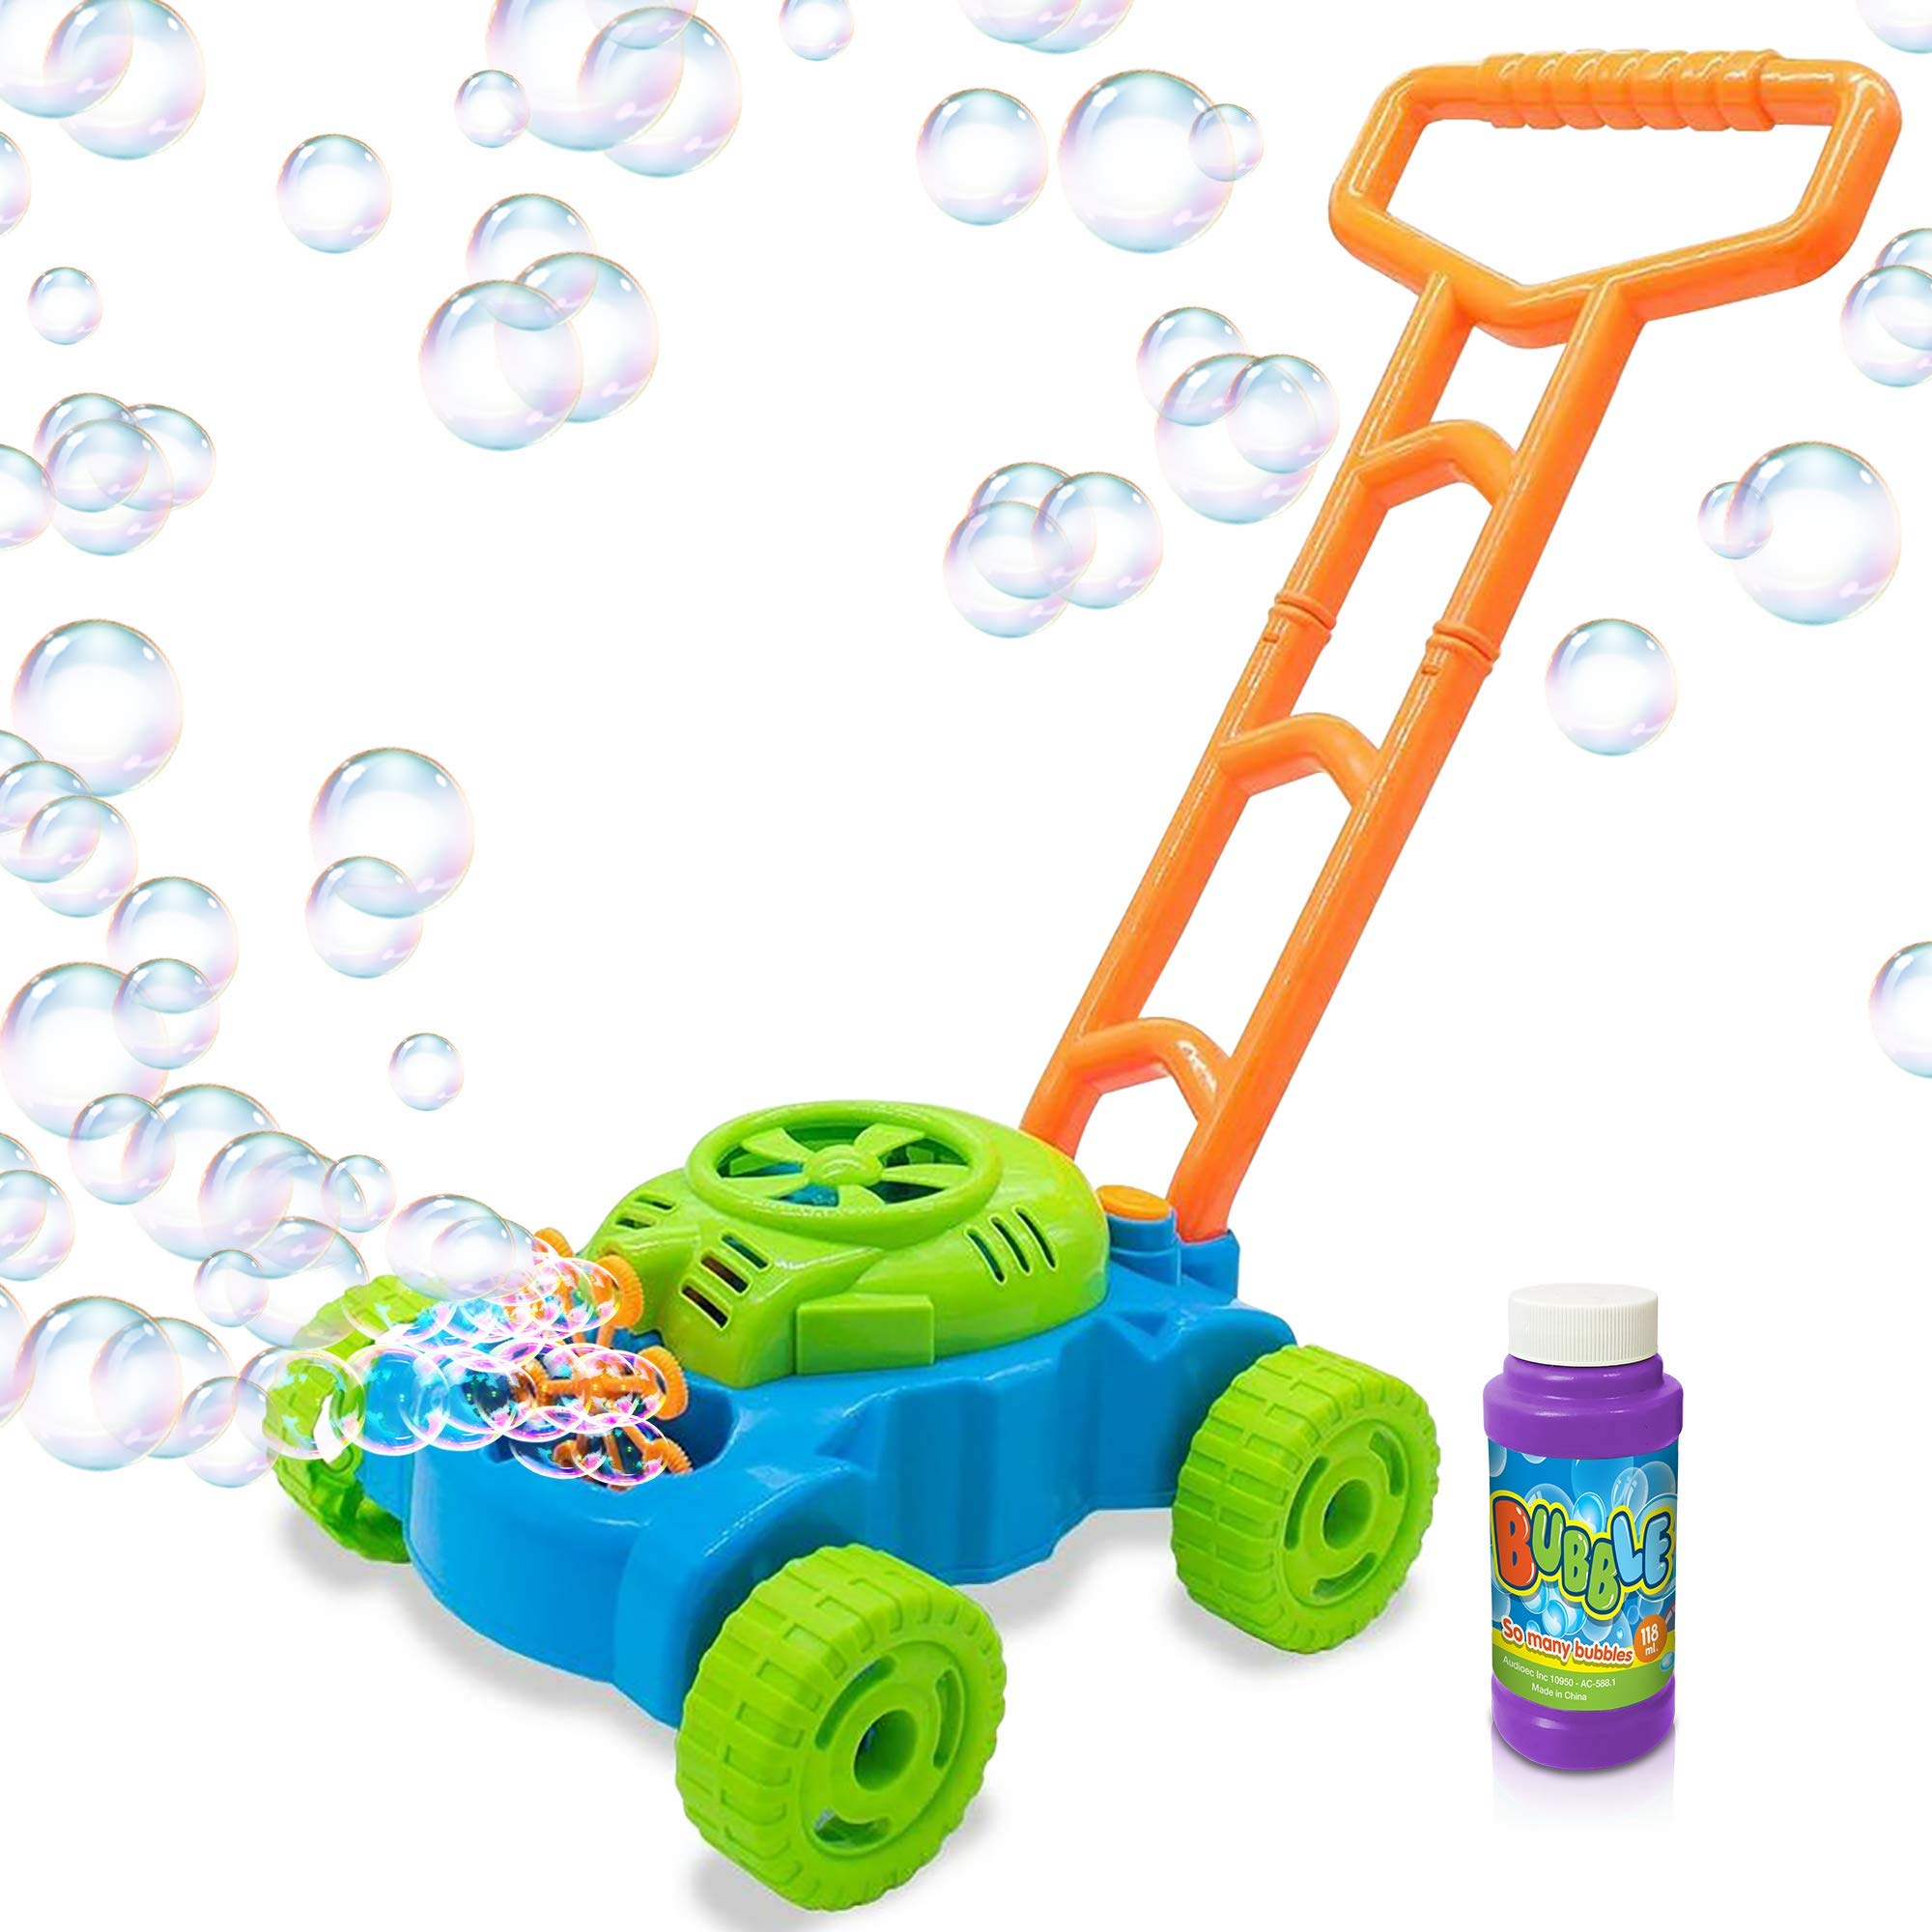 ArtCreativity Bubble Lawn Mower - Electronic Bubble Blower Machine - Fun Bubbles Blowing Push Toys for Kids - Bubble Solution Included - Best Birthday Gift for Boys, Girls, Toddlers by ArtCreativity